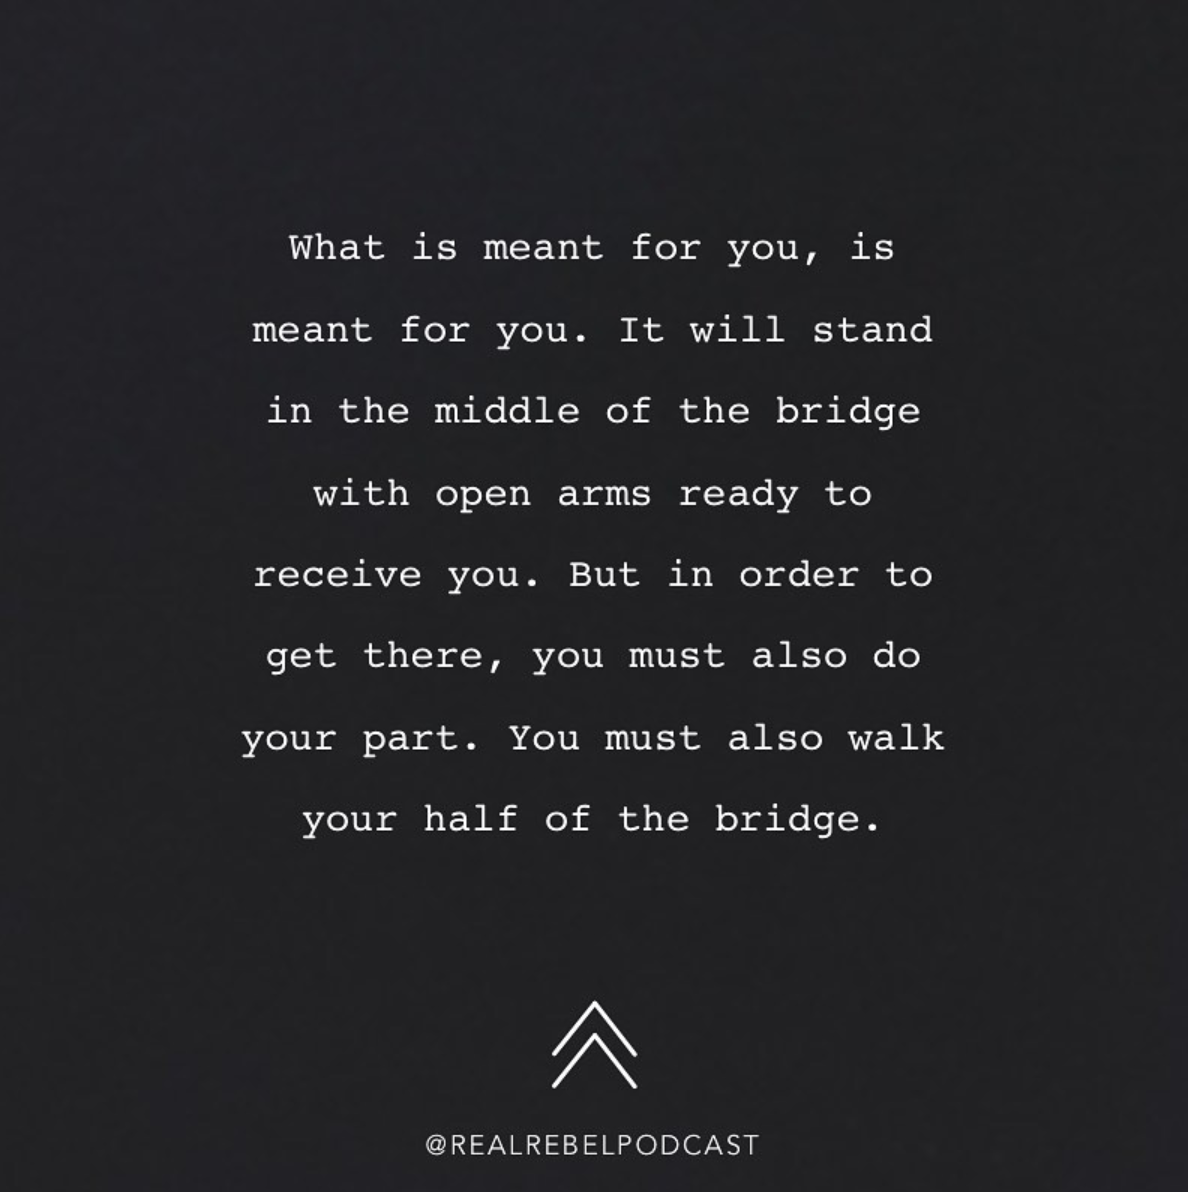 real-rebel-podcast-audio-coffee-030-quote.png